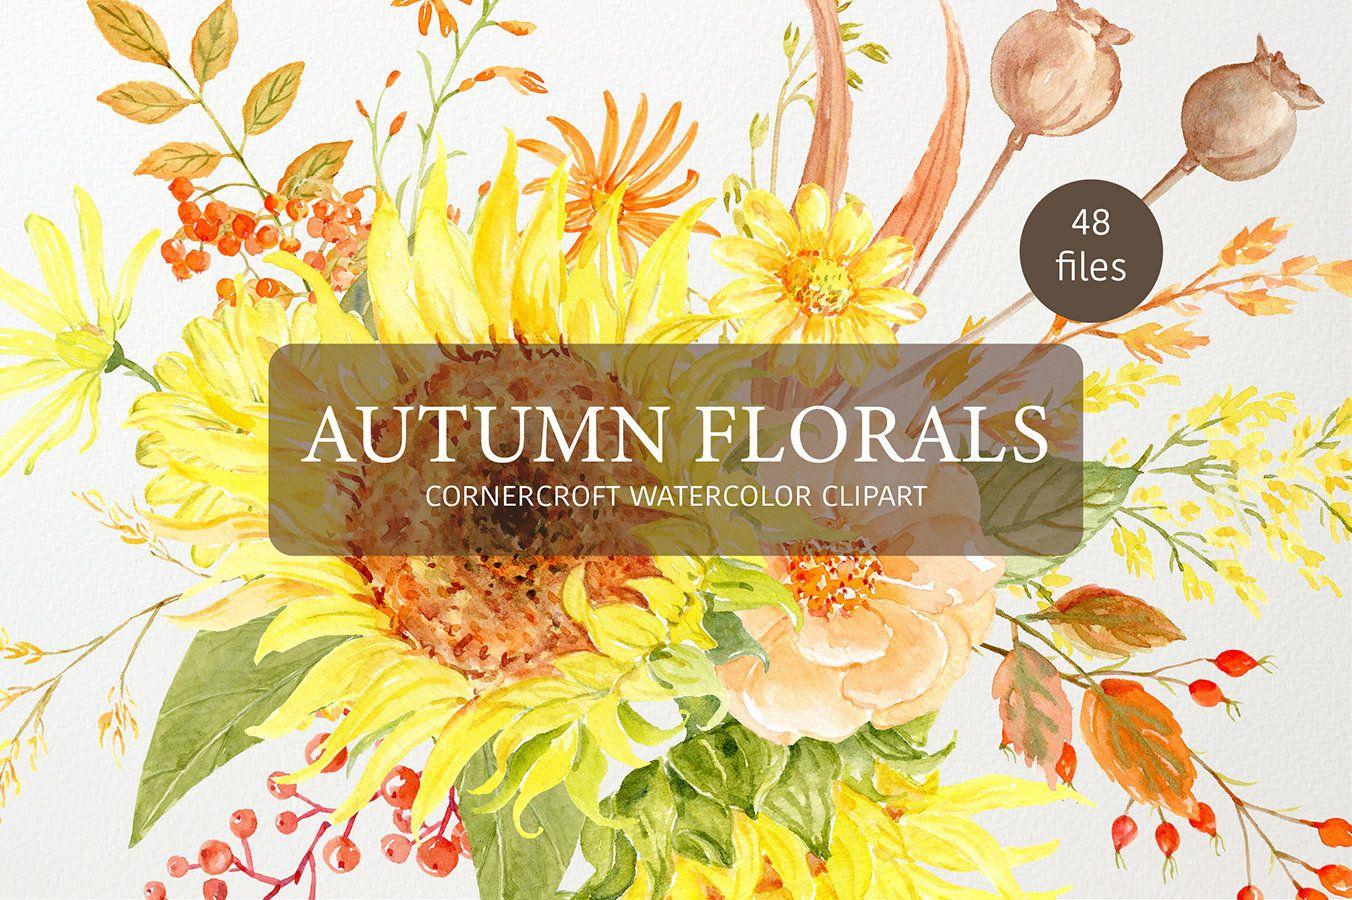 Watercolor clipart autumn florals fall flowers sunflower rose